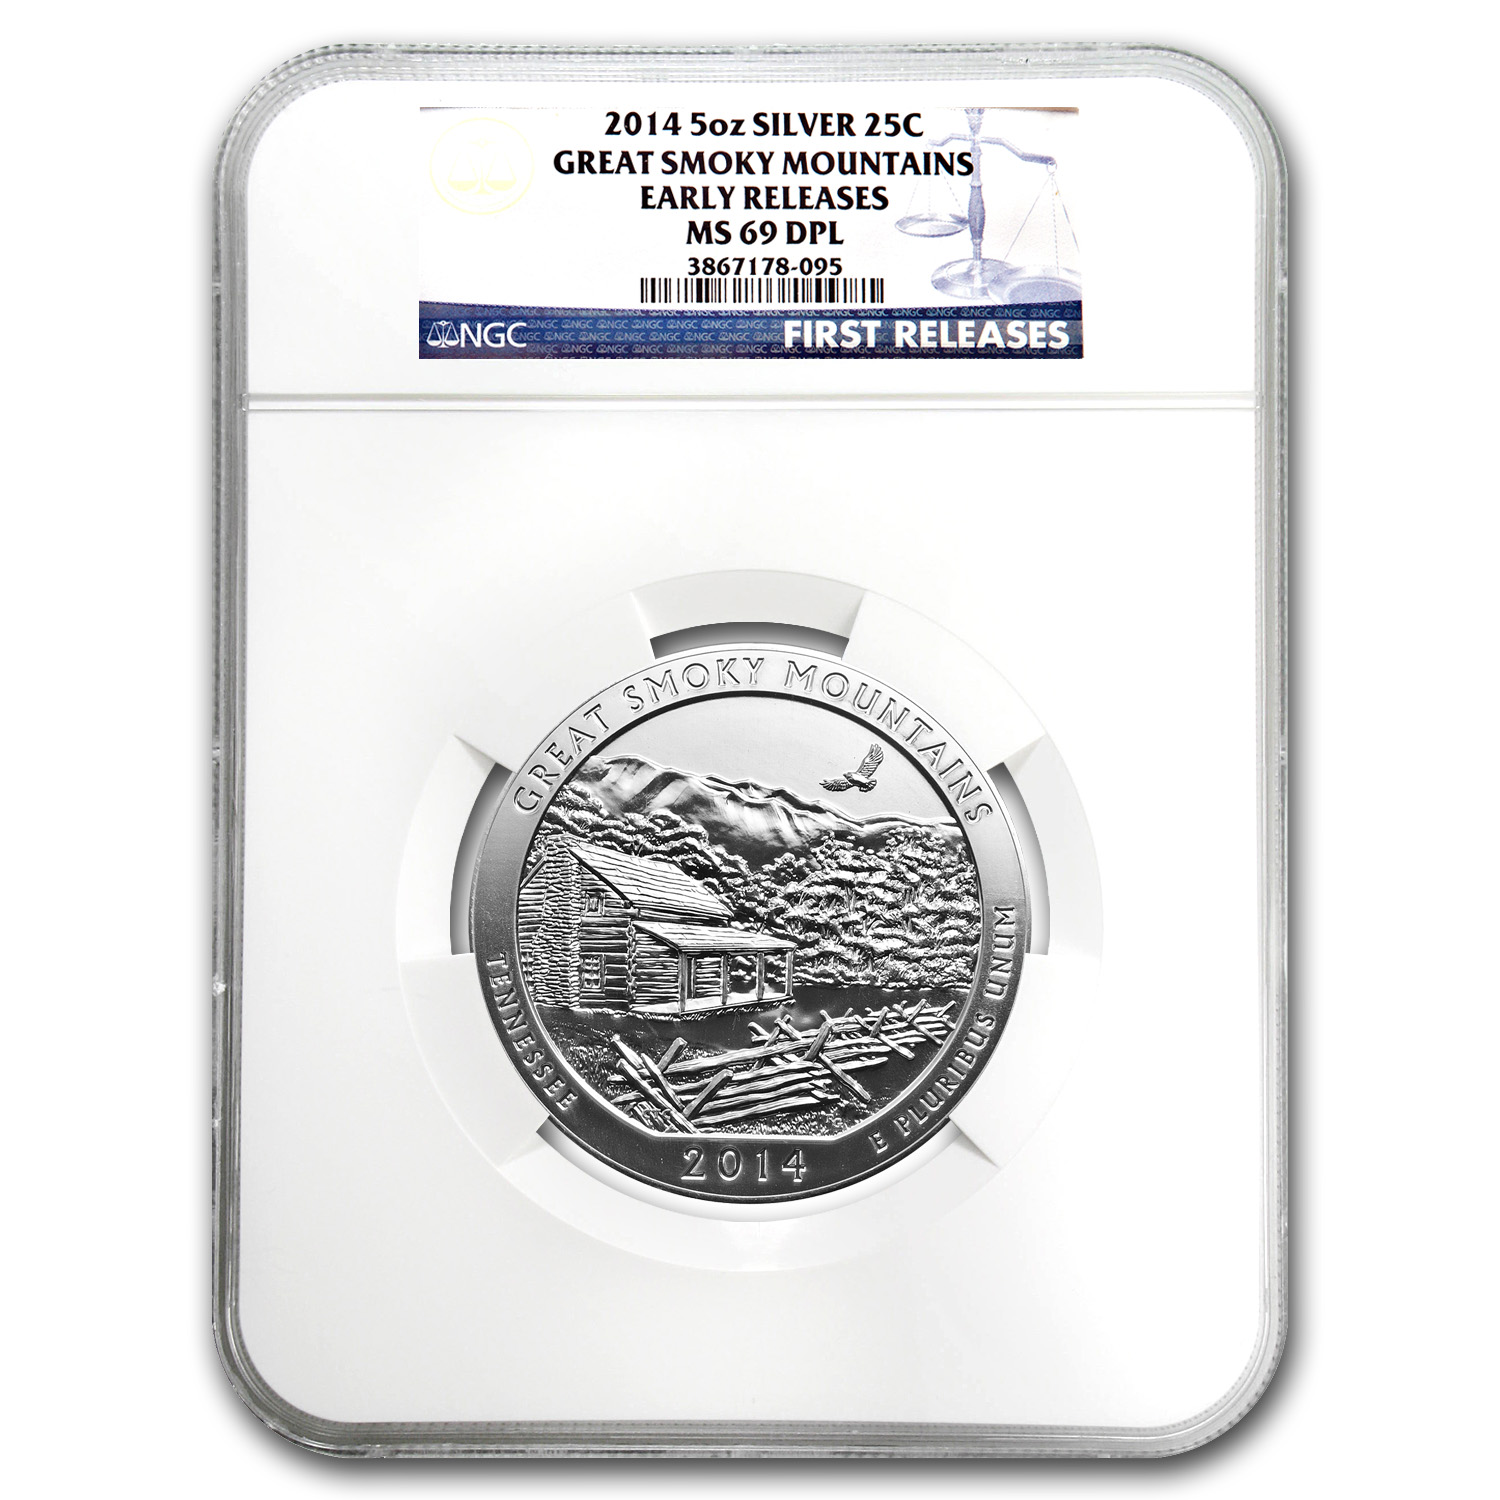 2014 5 oz Silver ATB Great Smoky Mountains MS-69 DPL NGC (ER)